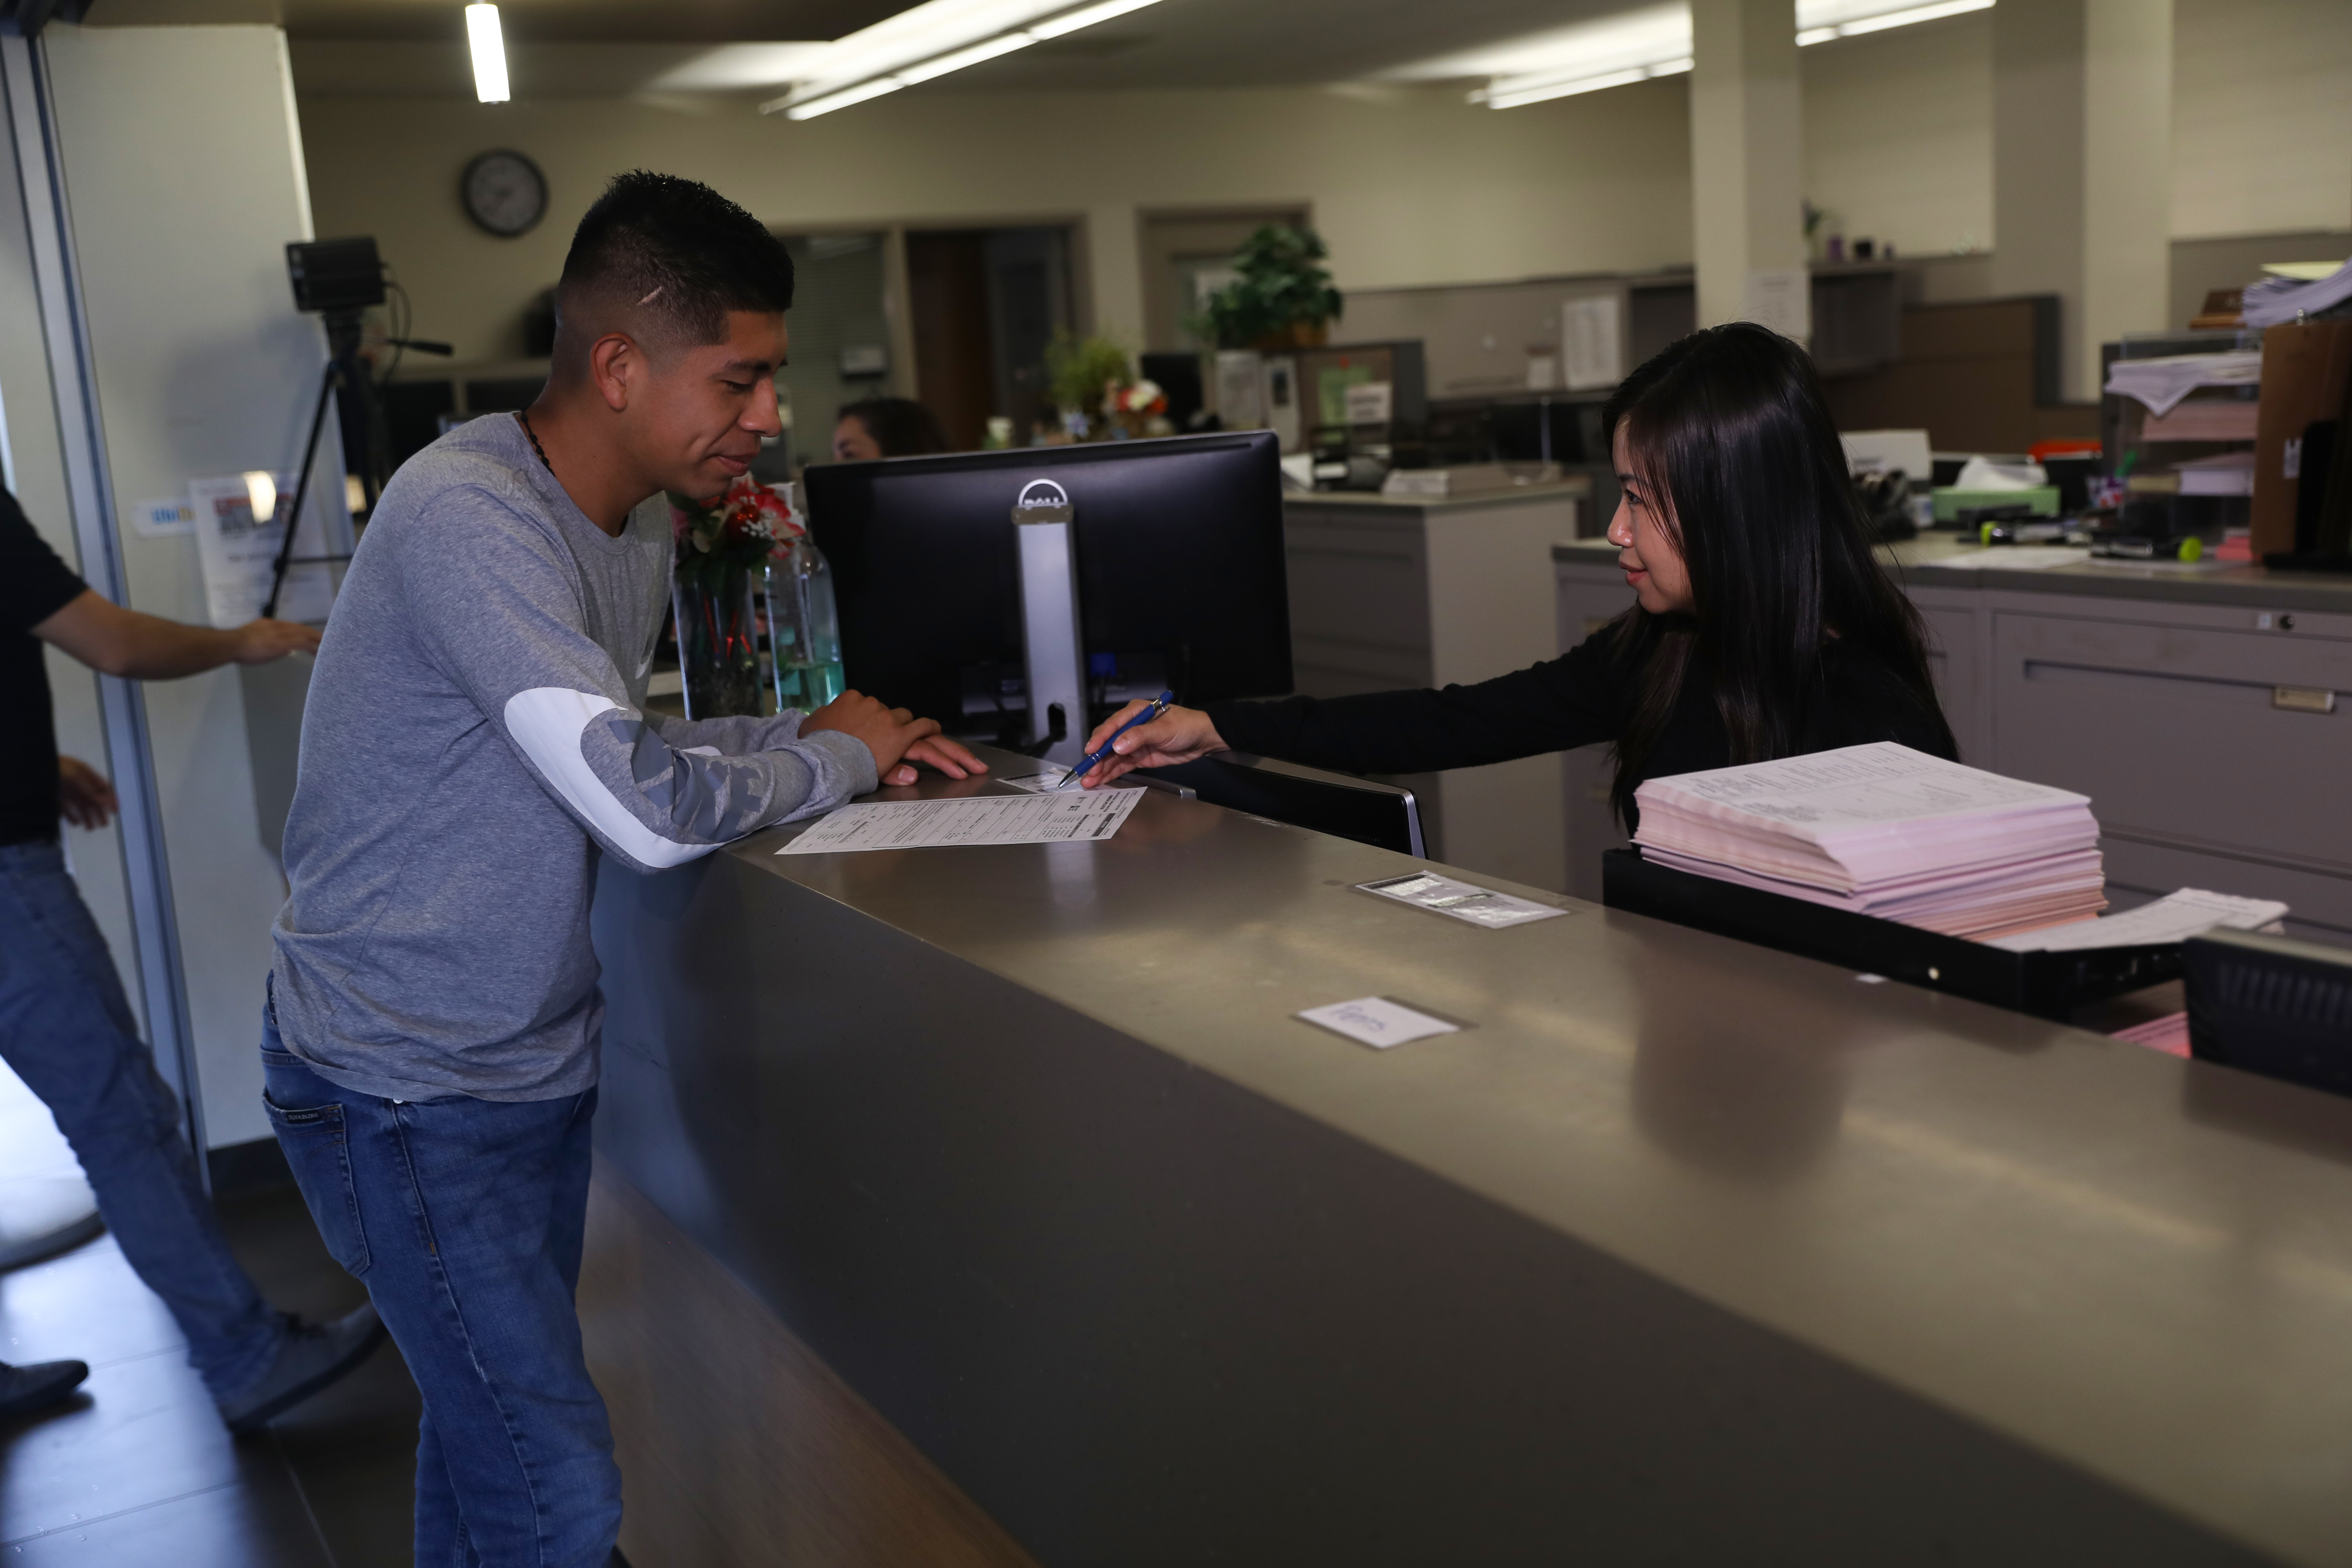 student being assisted by A&R staff at Admissions counter